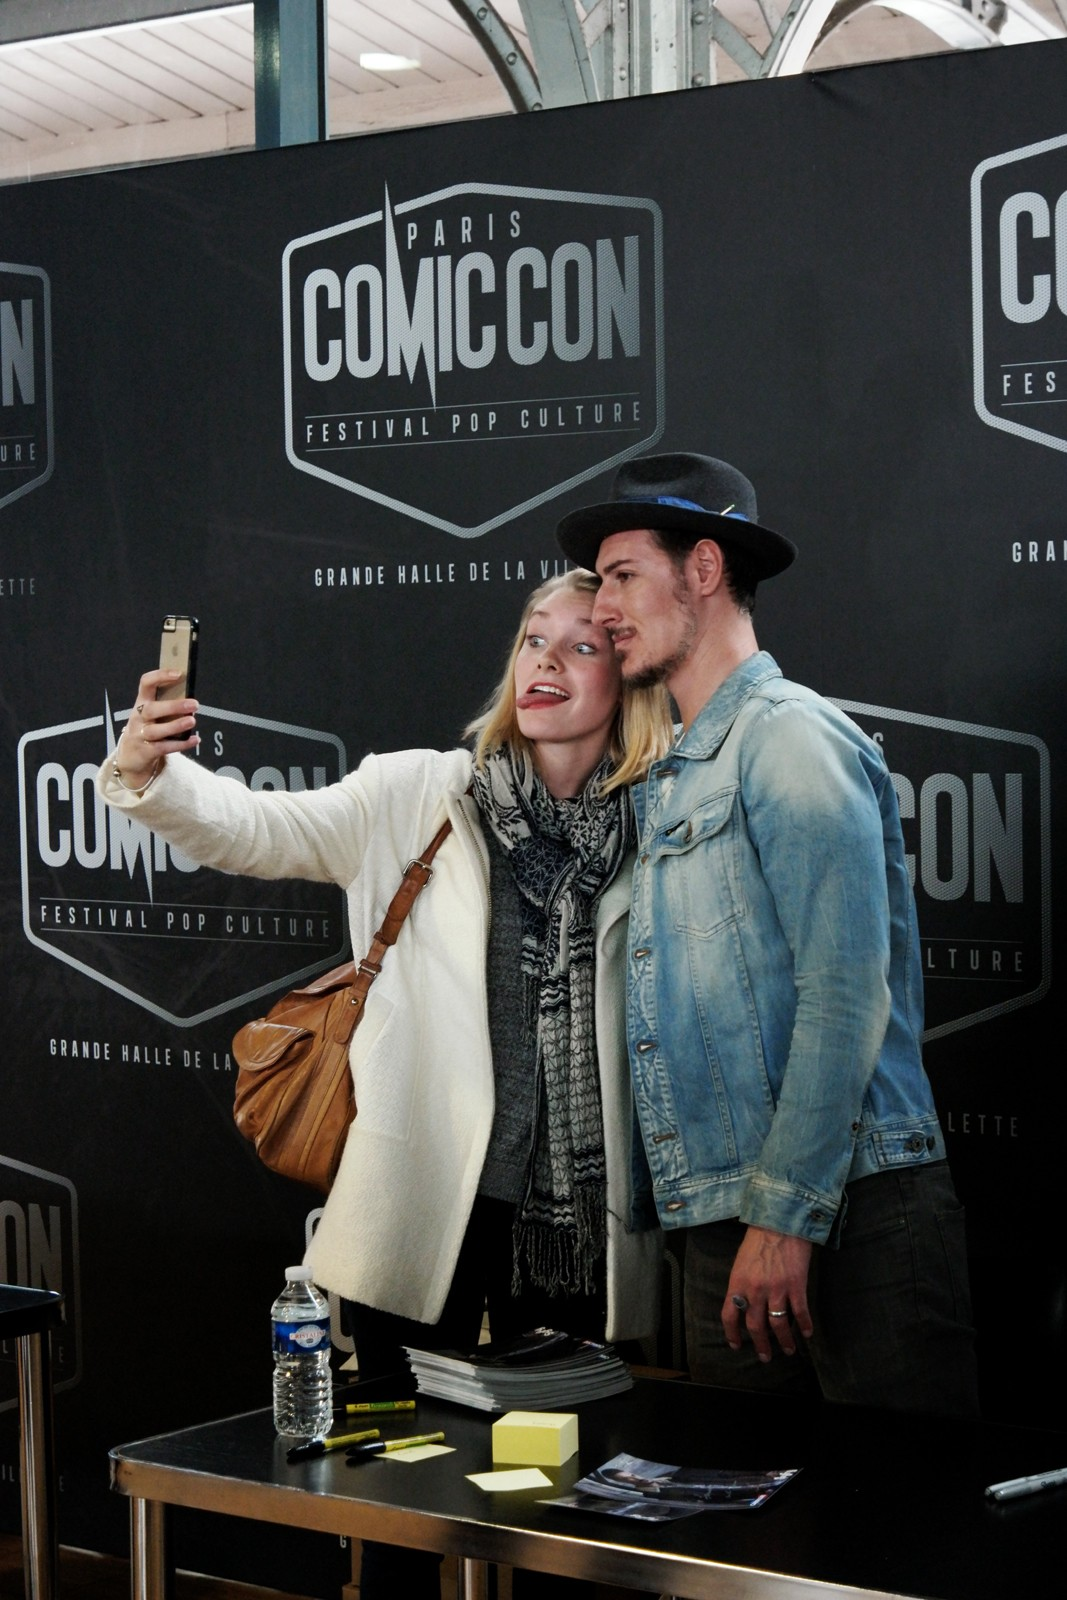 Funny selfie with Eric Balfour Haven 24 Six Feet Under actor signing session Comic Con Paris festival 2015 séance dédicaces La Grande Halle de la Villette photo united states of paris blog